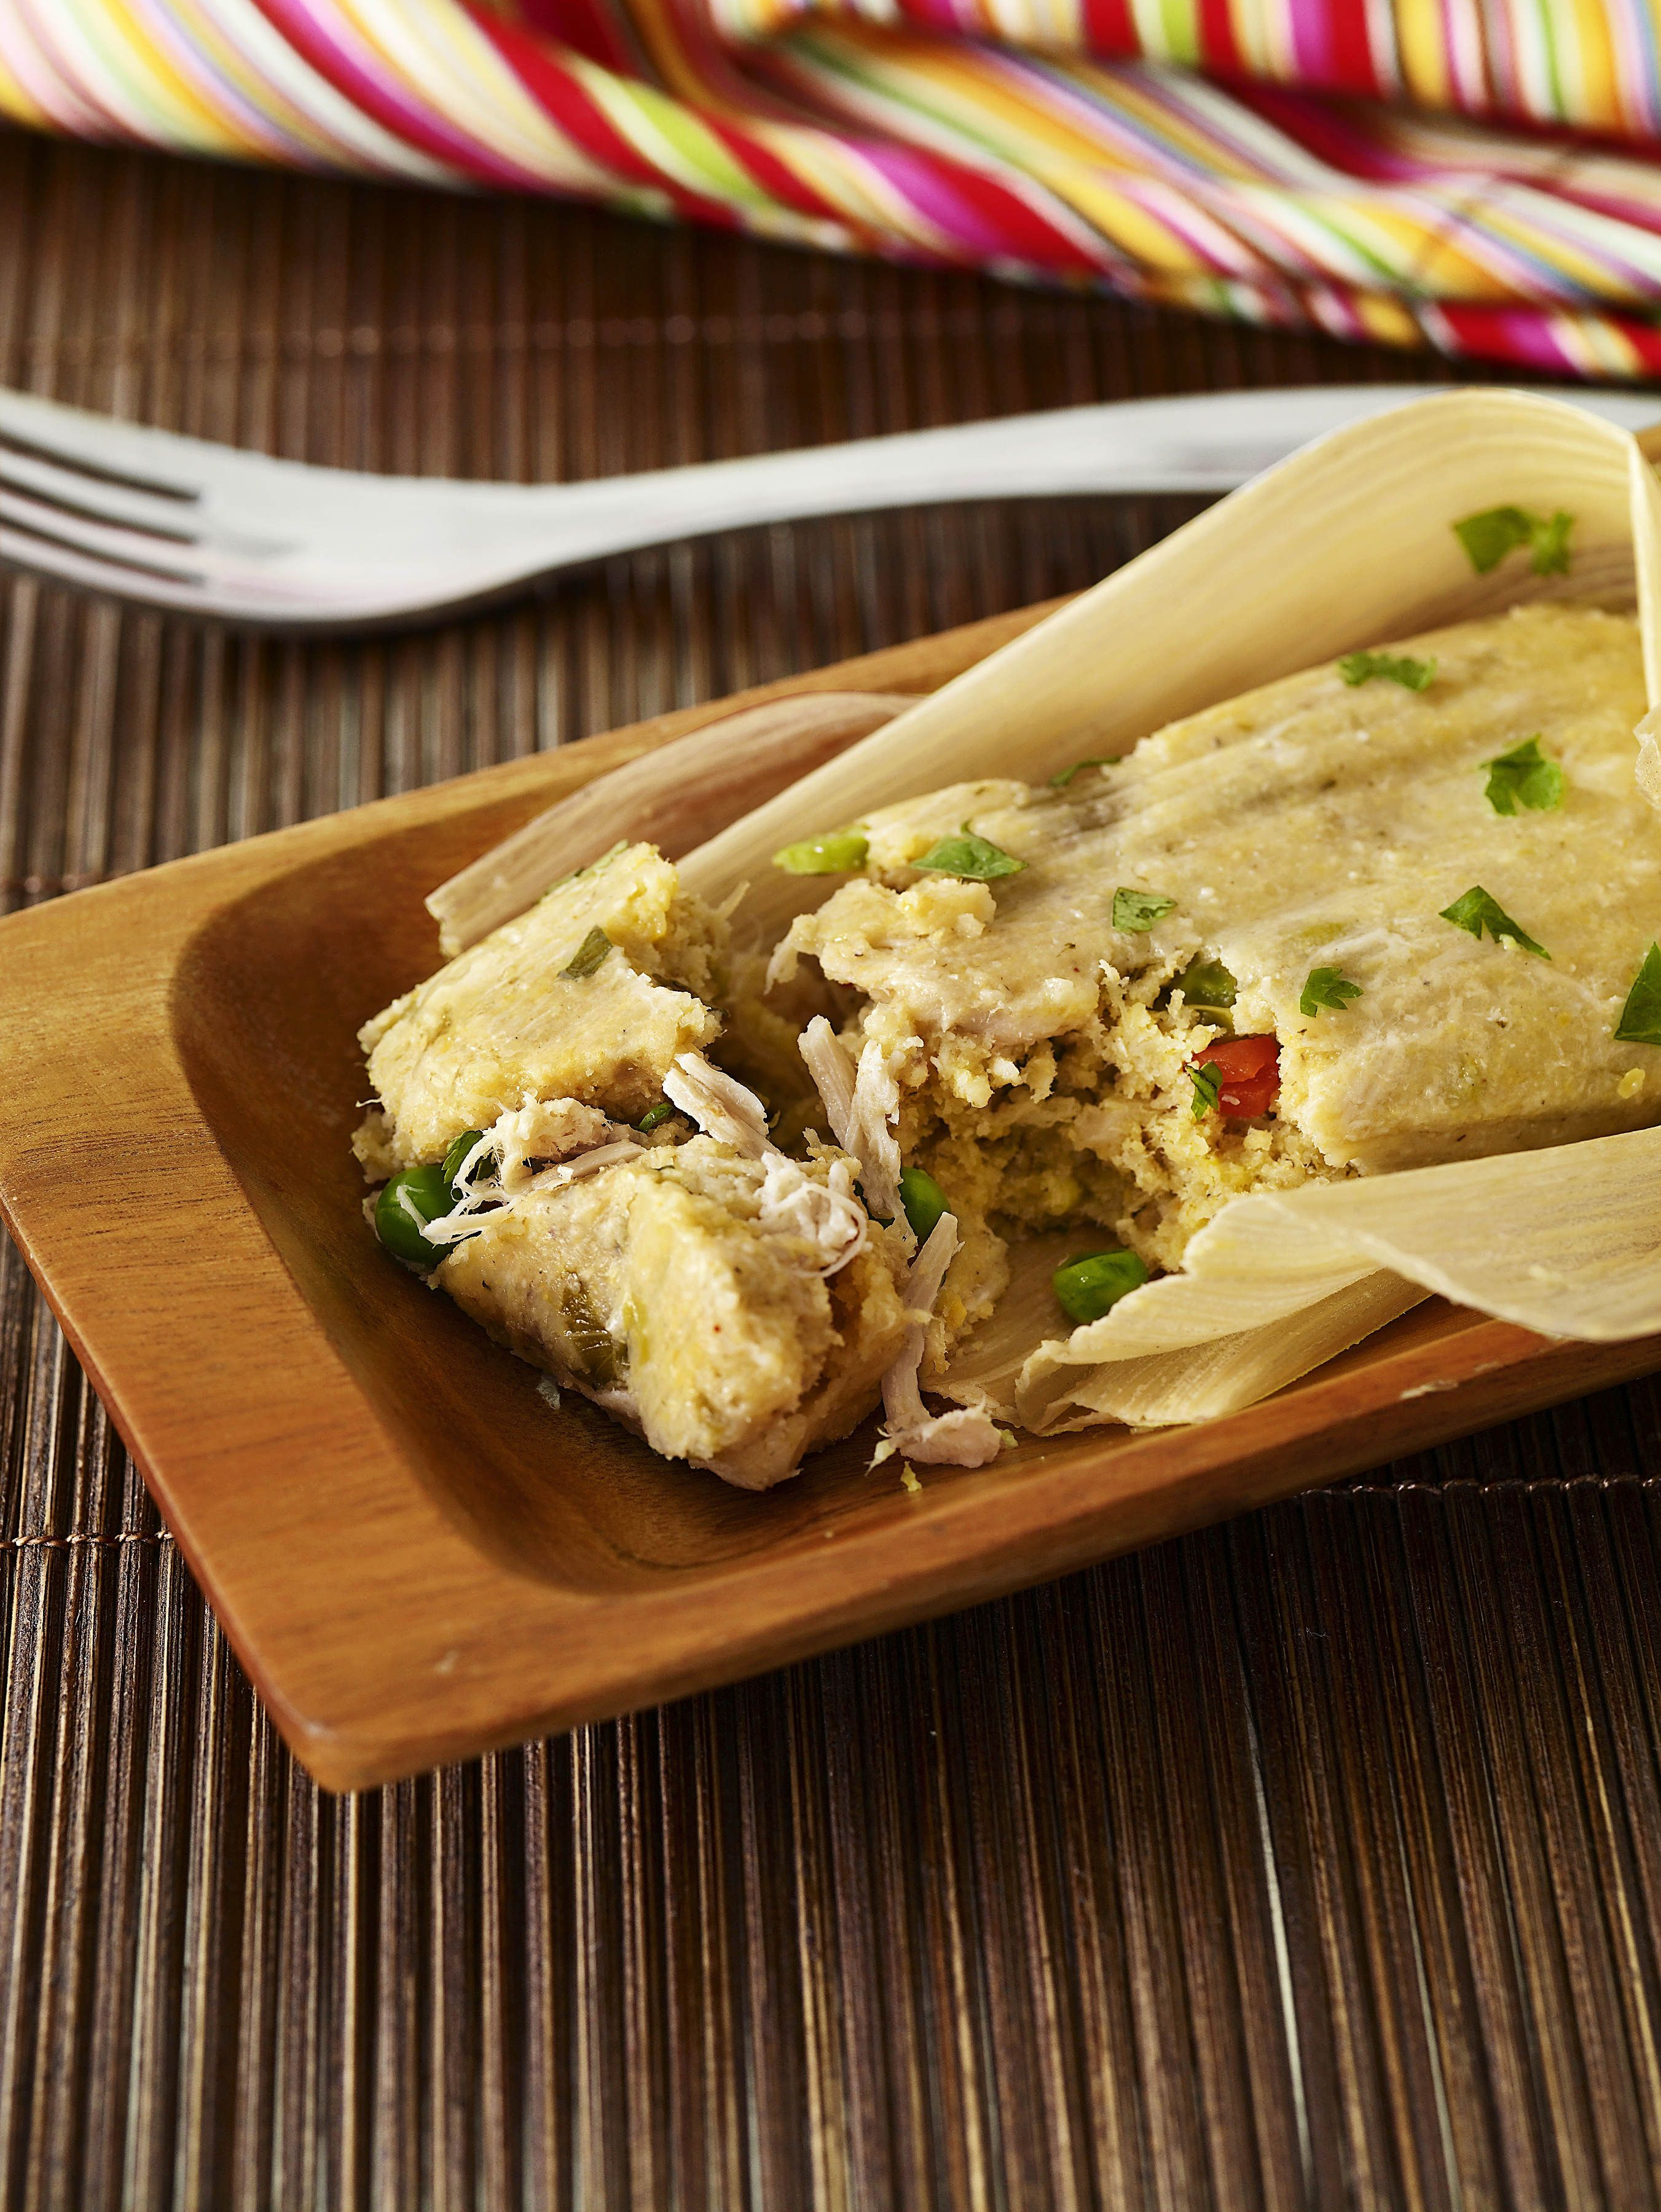 Get this all star easy to follow chicken tamales recipe from ingrid jarred green salsa and store bought rotisserie chicken to speed up prep time for her easy chicken tamales photos courtesy of food network magazine forumfinder Choice Image